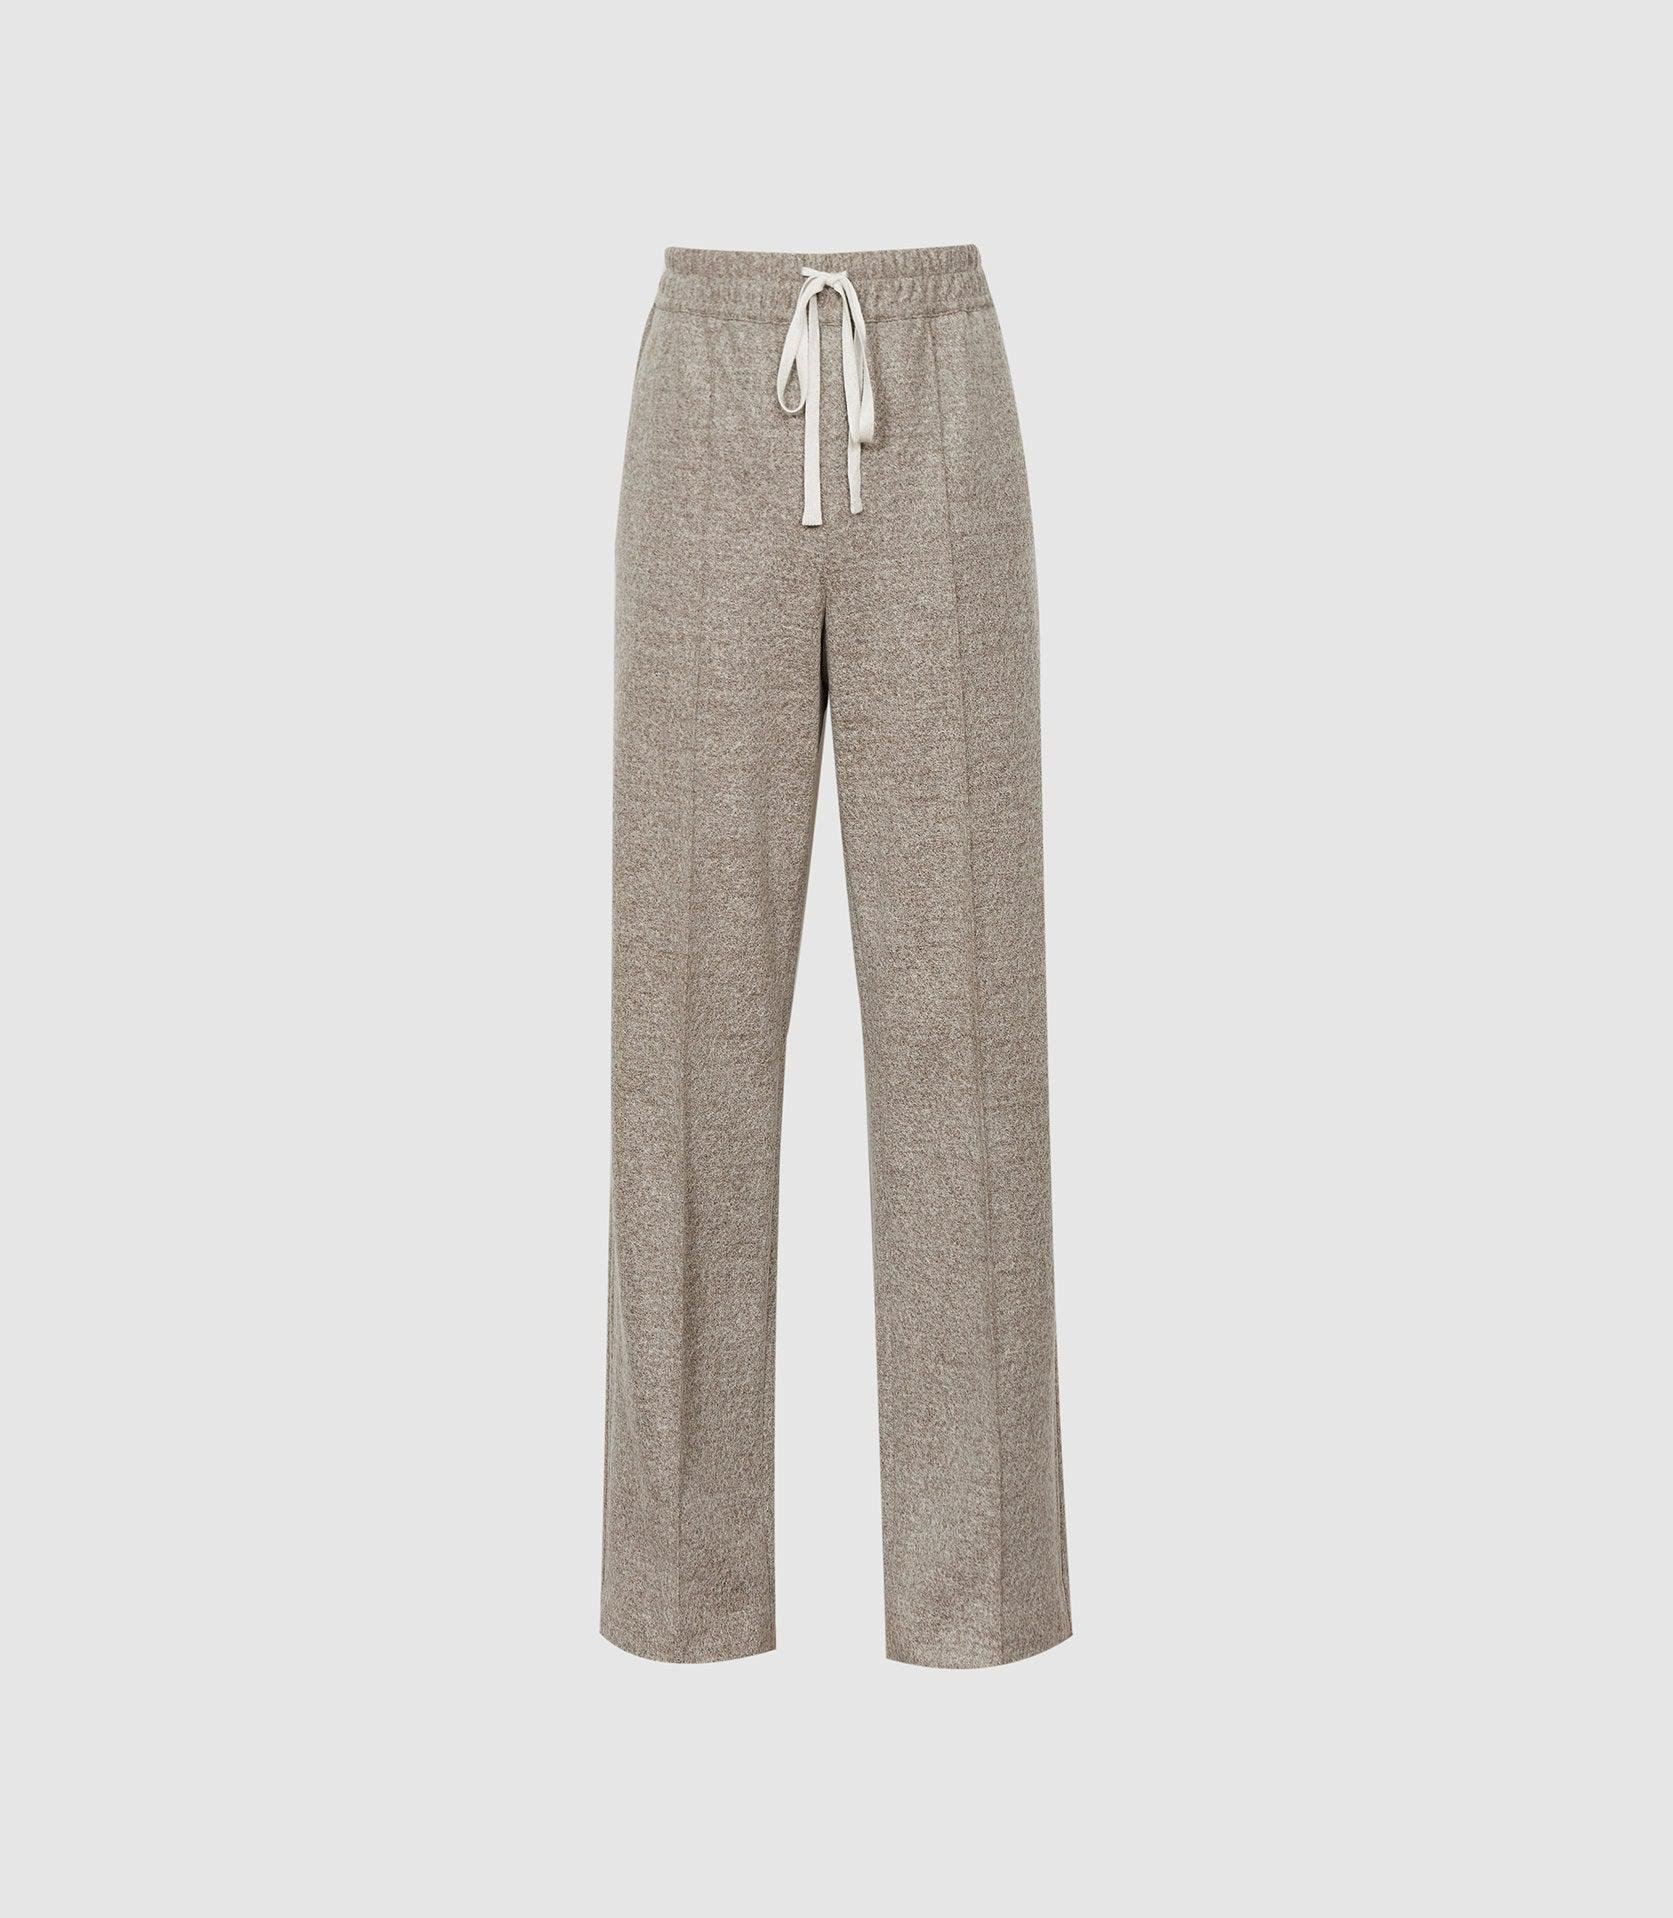 JOEY - TEXTURED WIDE LEG TROUSERS 5